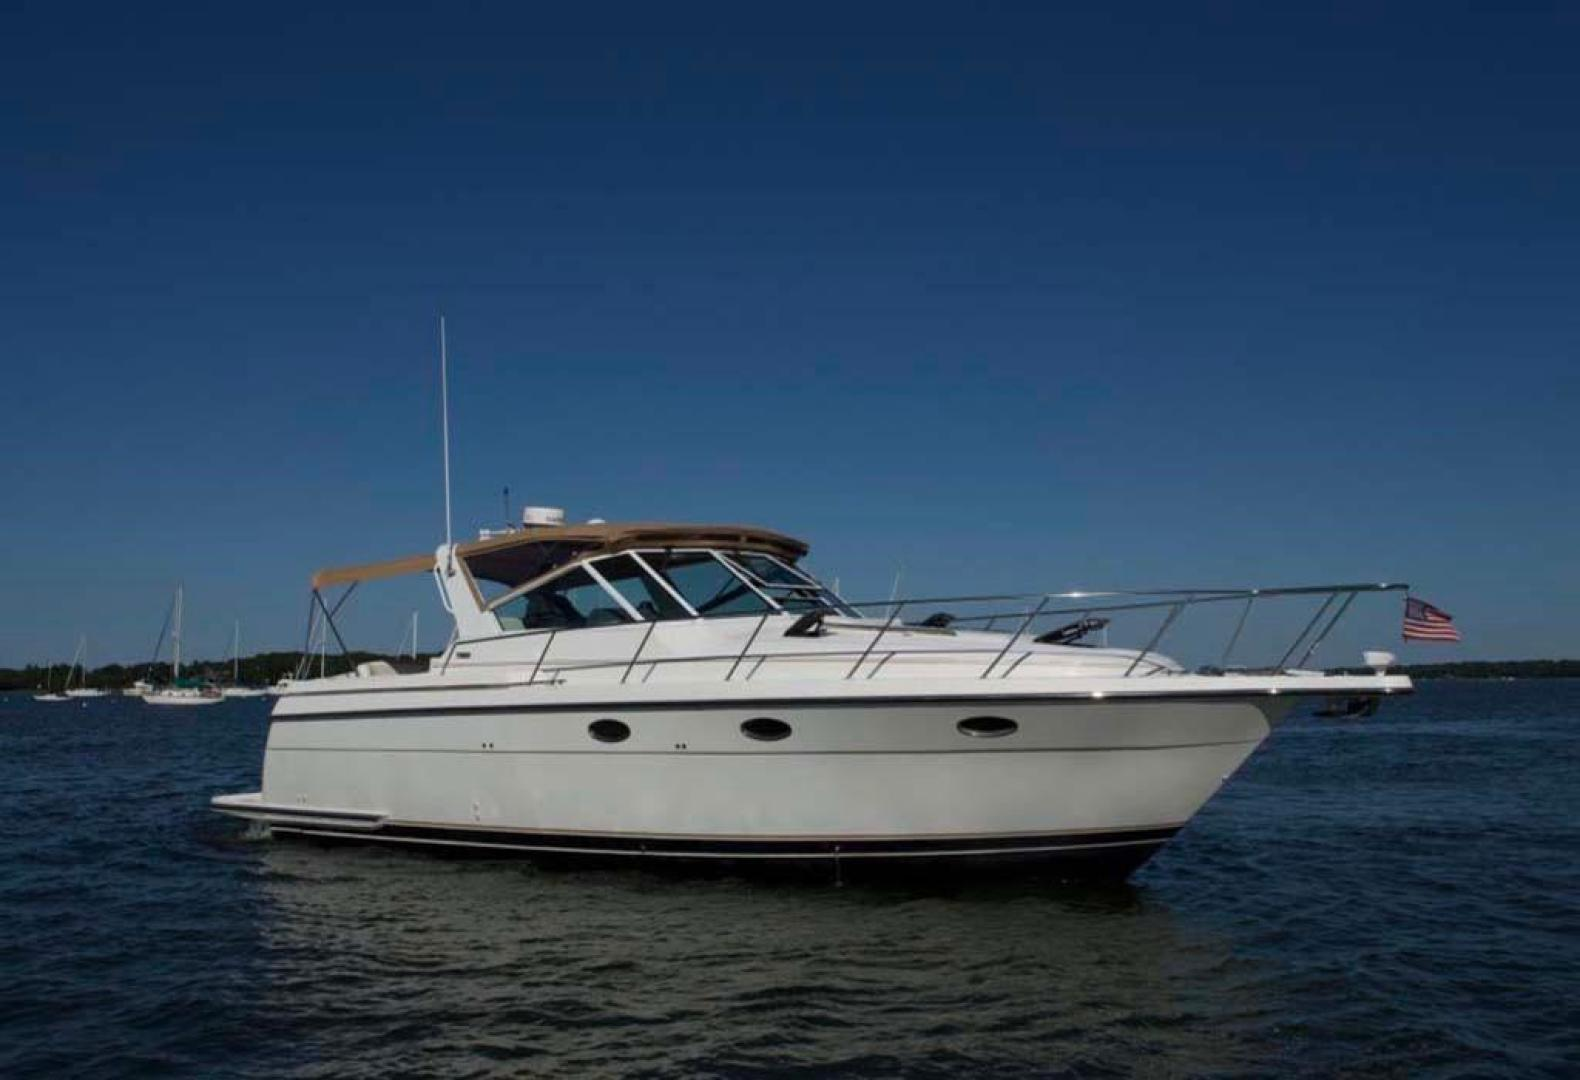 Tiara Yachts-3500 Express 2002-DEFICIT SPENDING Shelter Island, Long Island-New York-United States-Starboard-930518 | Thumbnail